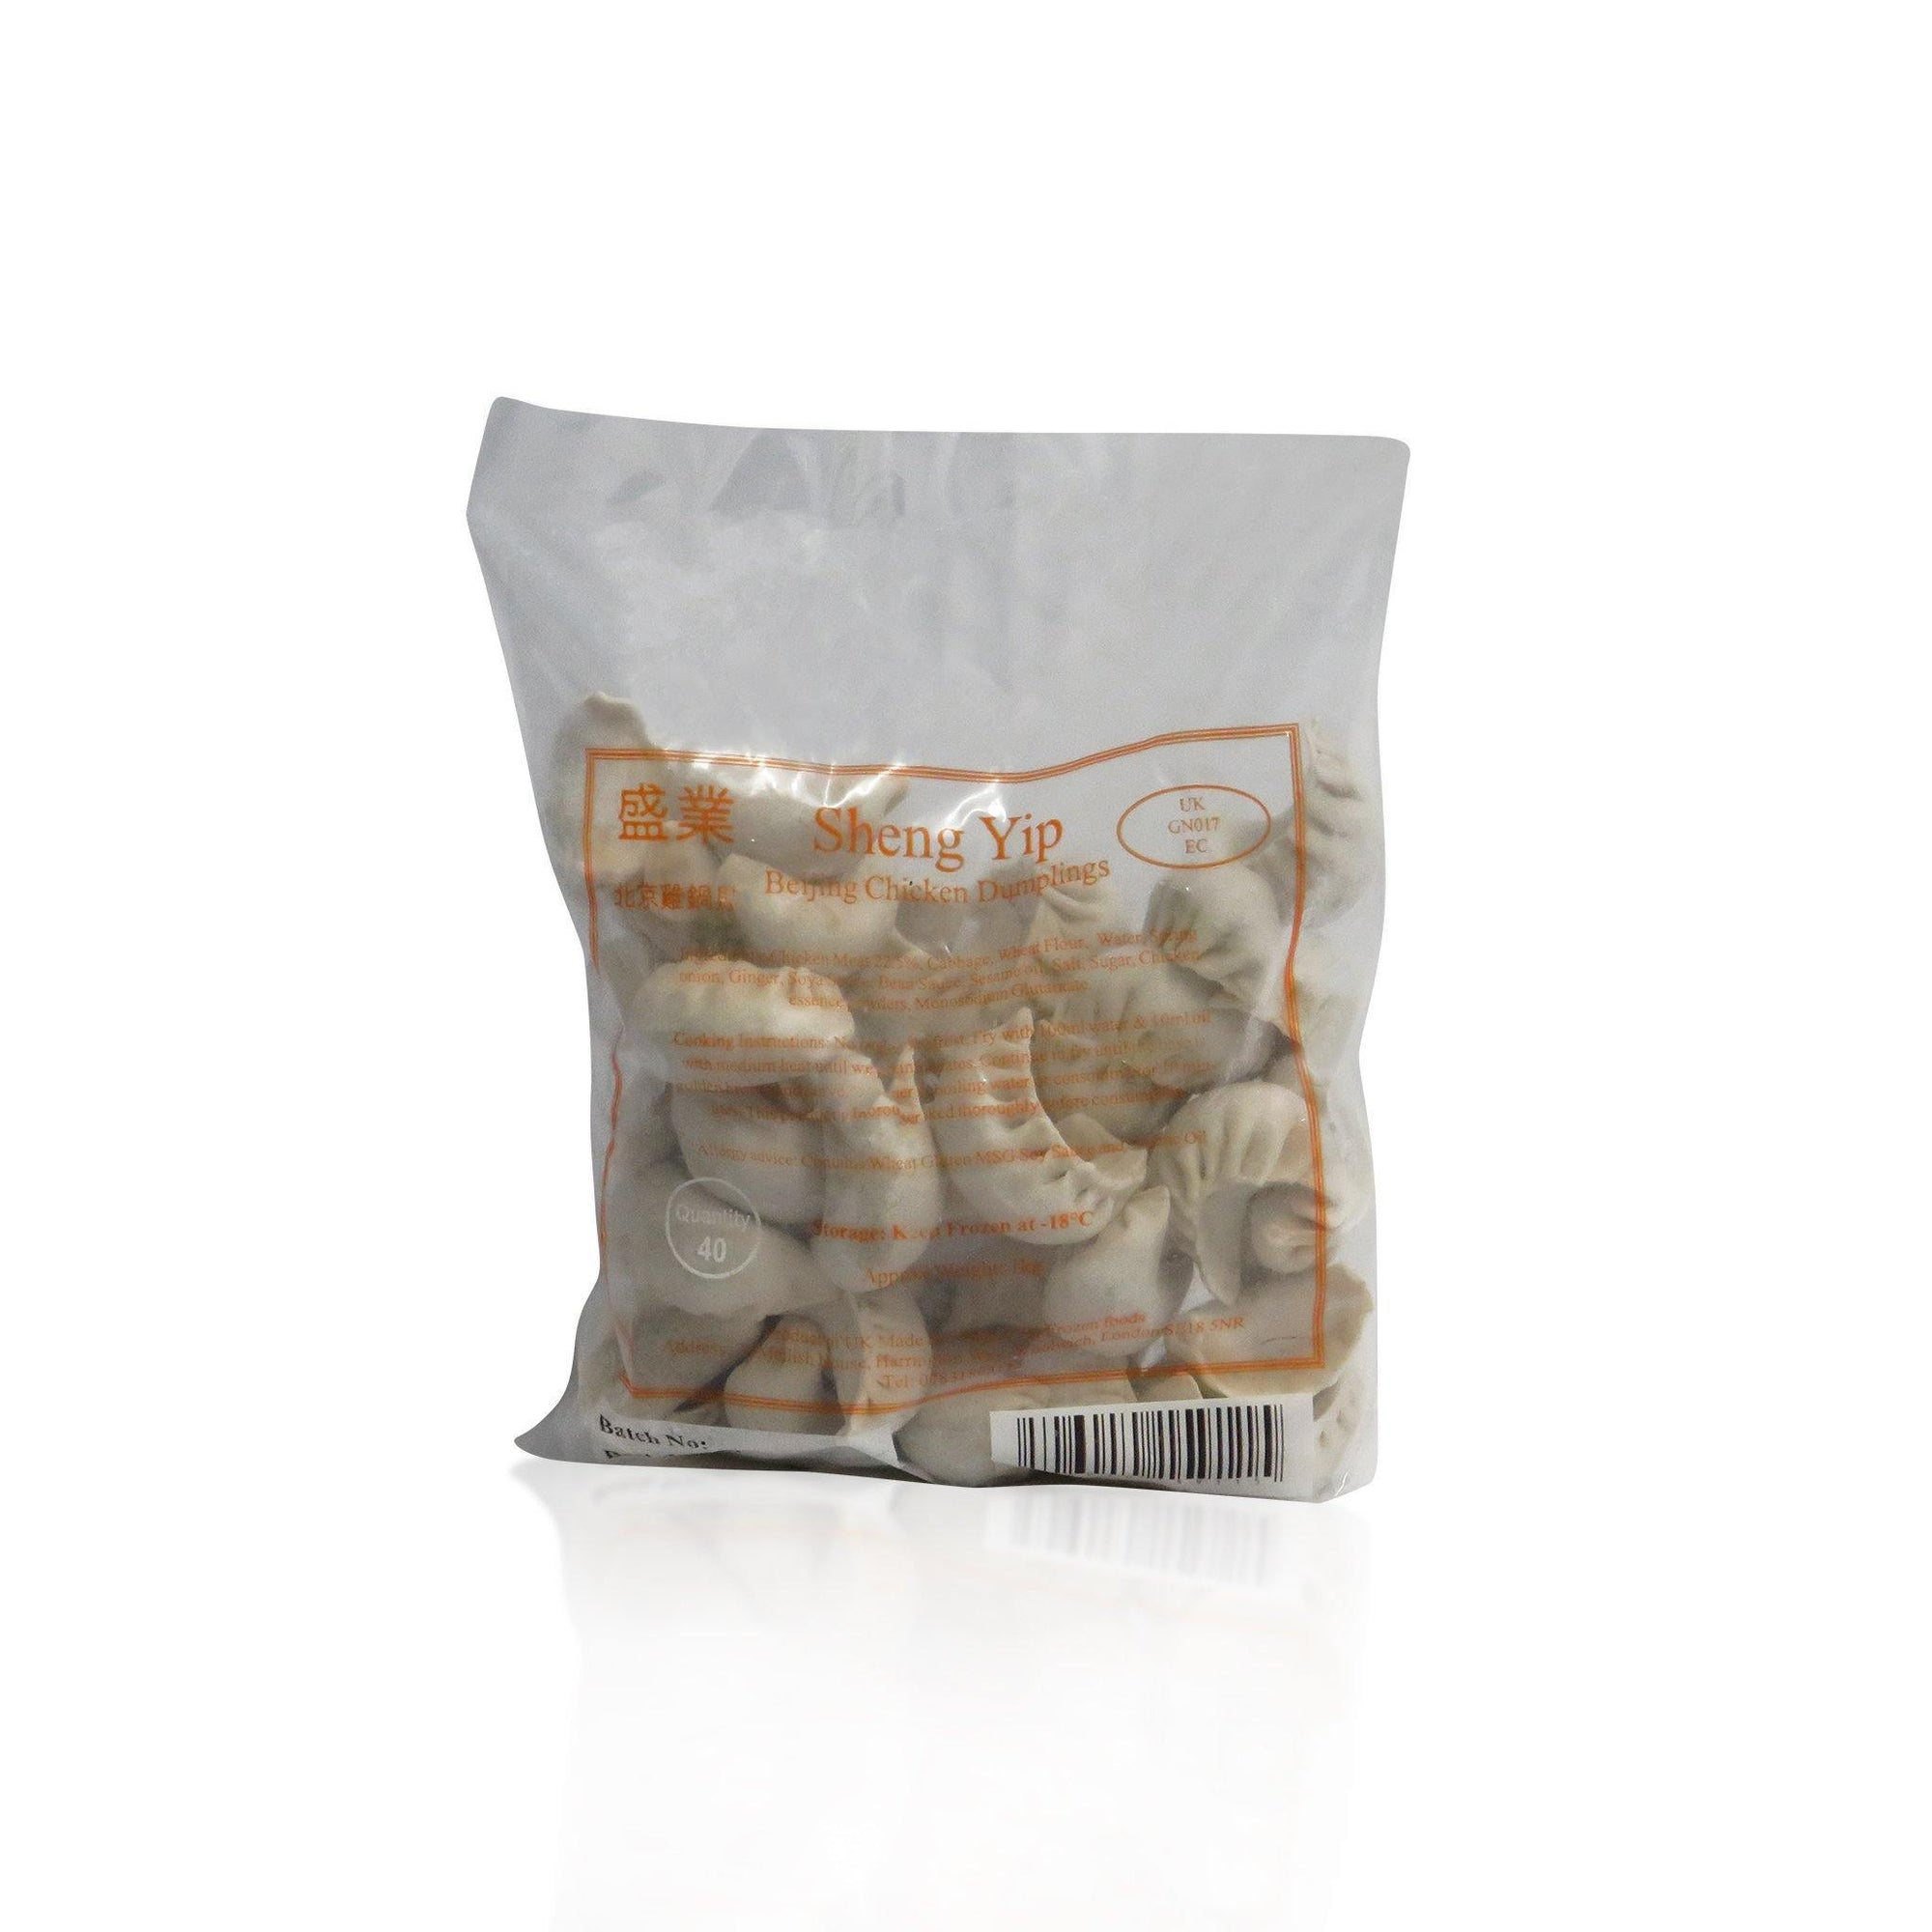 Sheng Yip Chicken Chinese Dumplings 1KG - Asian Harvest